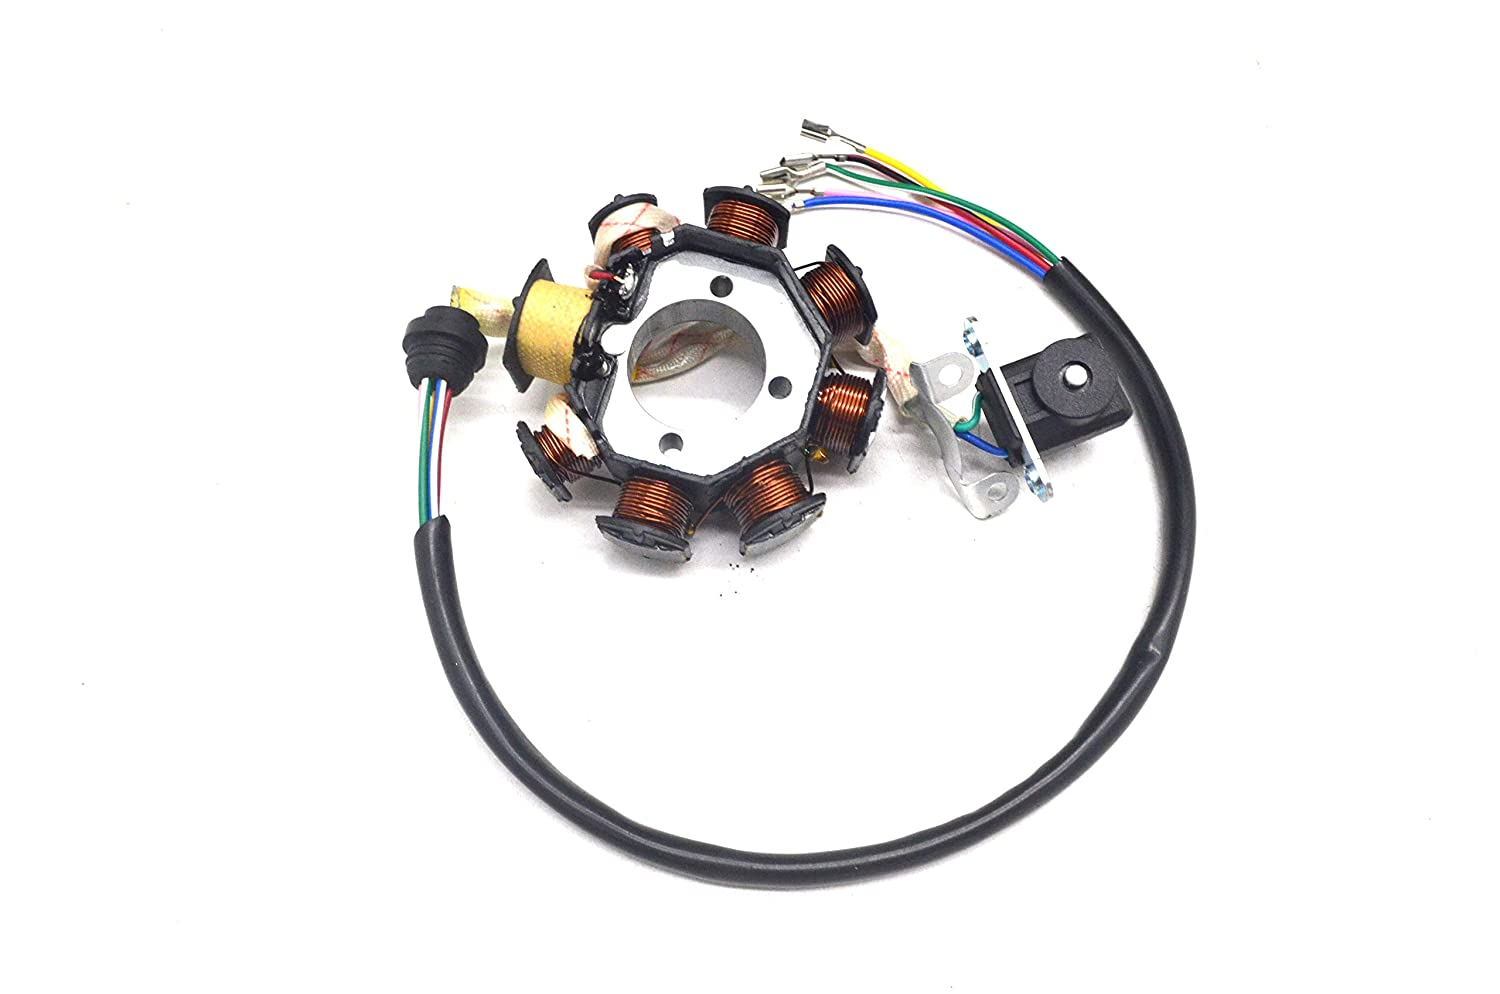 Chanoc 8 Poles Magneto Stator for 150cc 200cc 250cc ATV Quad Dirt Bike Pit Bike 4 Wheelers